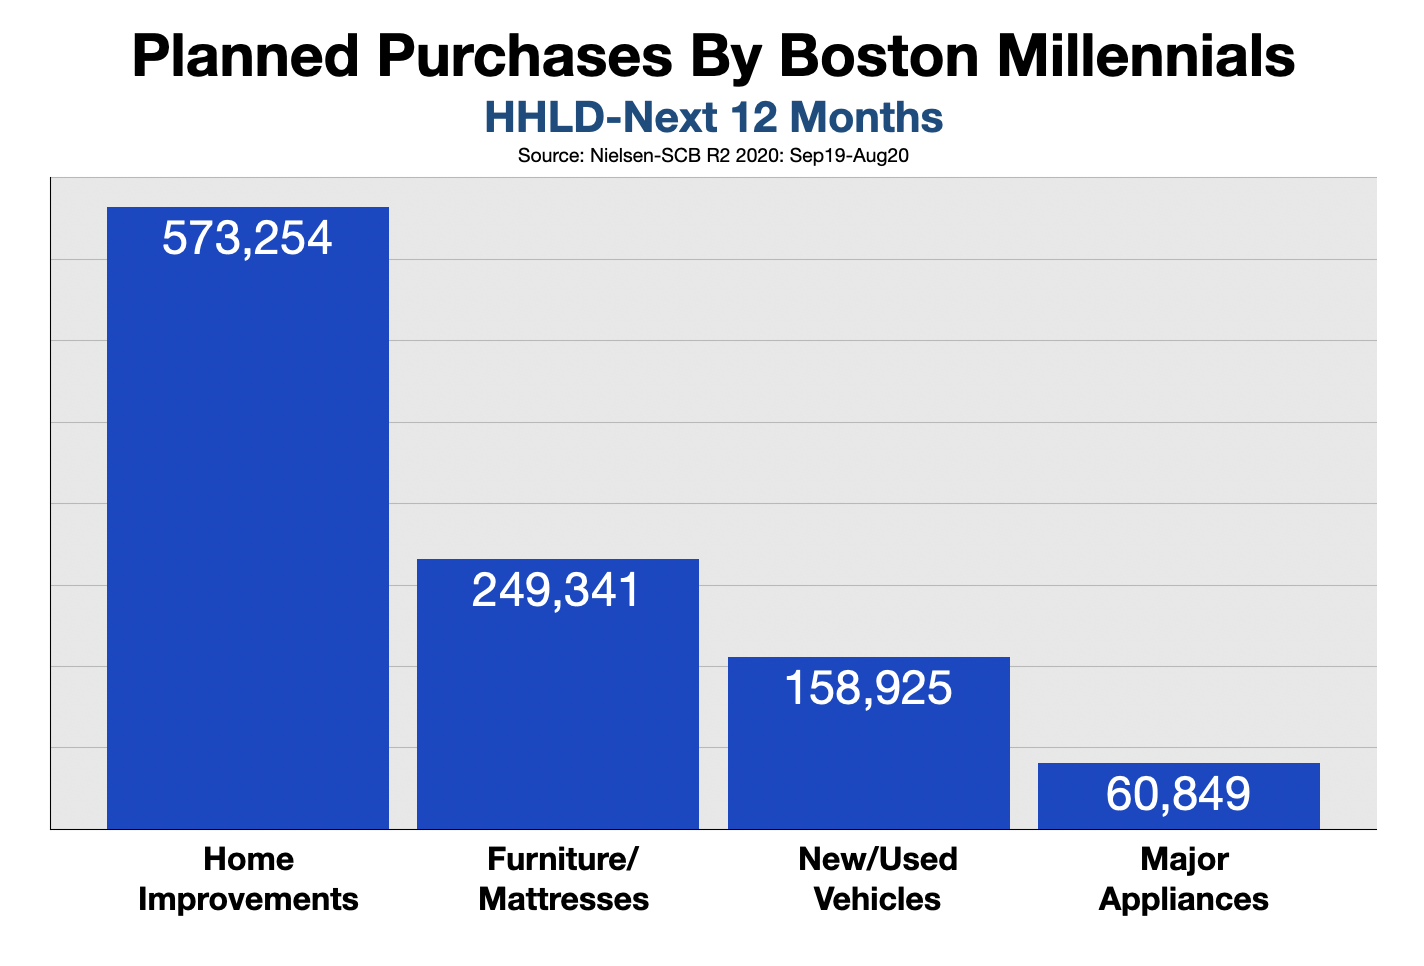 Advertising To Boston Millennials Purchases 2021